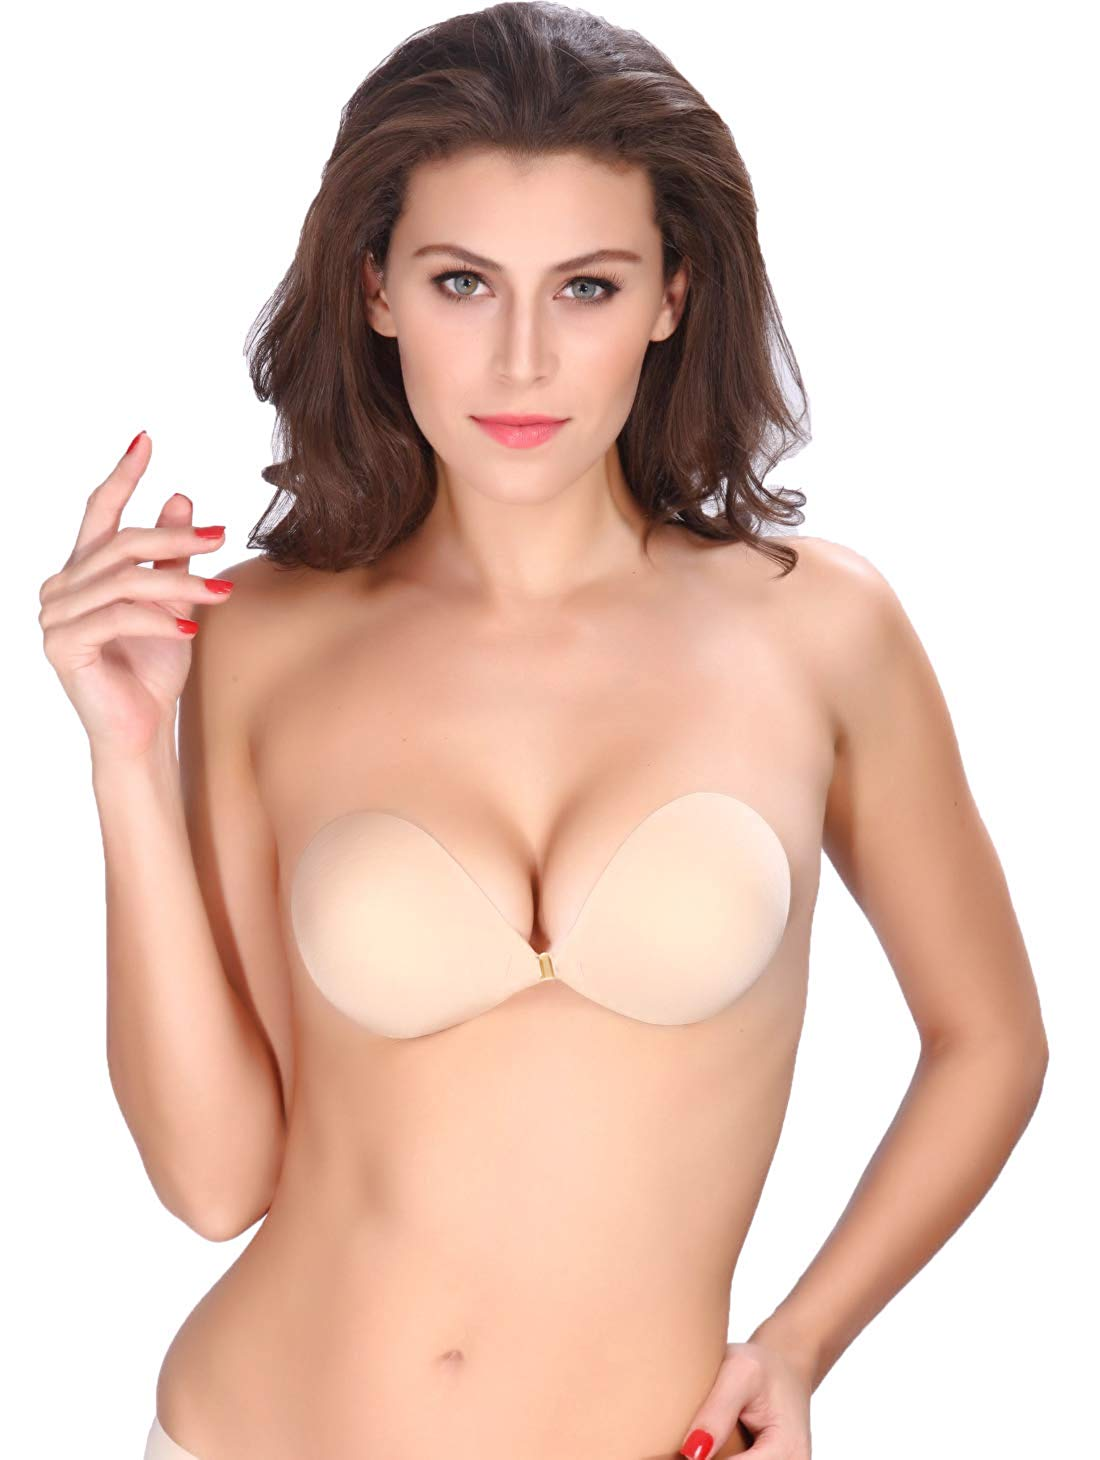 Buy AVIGOR Womens Strapless Bra Self Adhesive Silicone Sticky Bras Reusable Invisible Backless for Women in Cheap Price on Alibaba.com